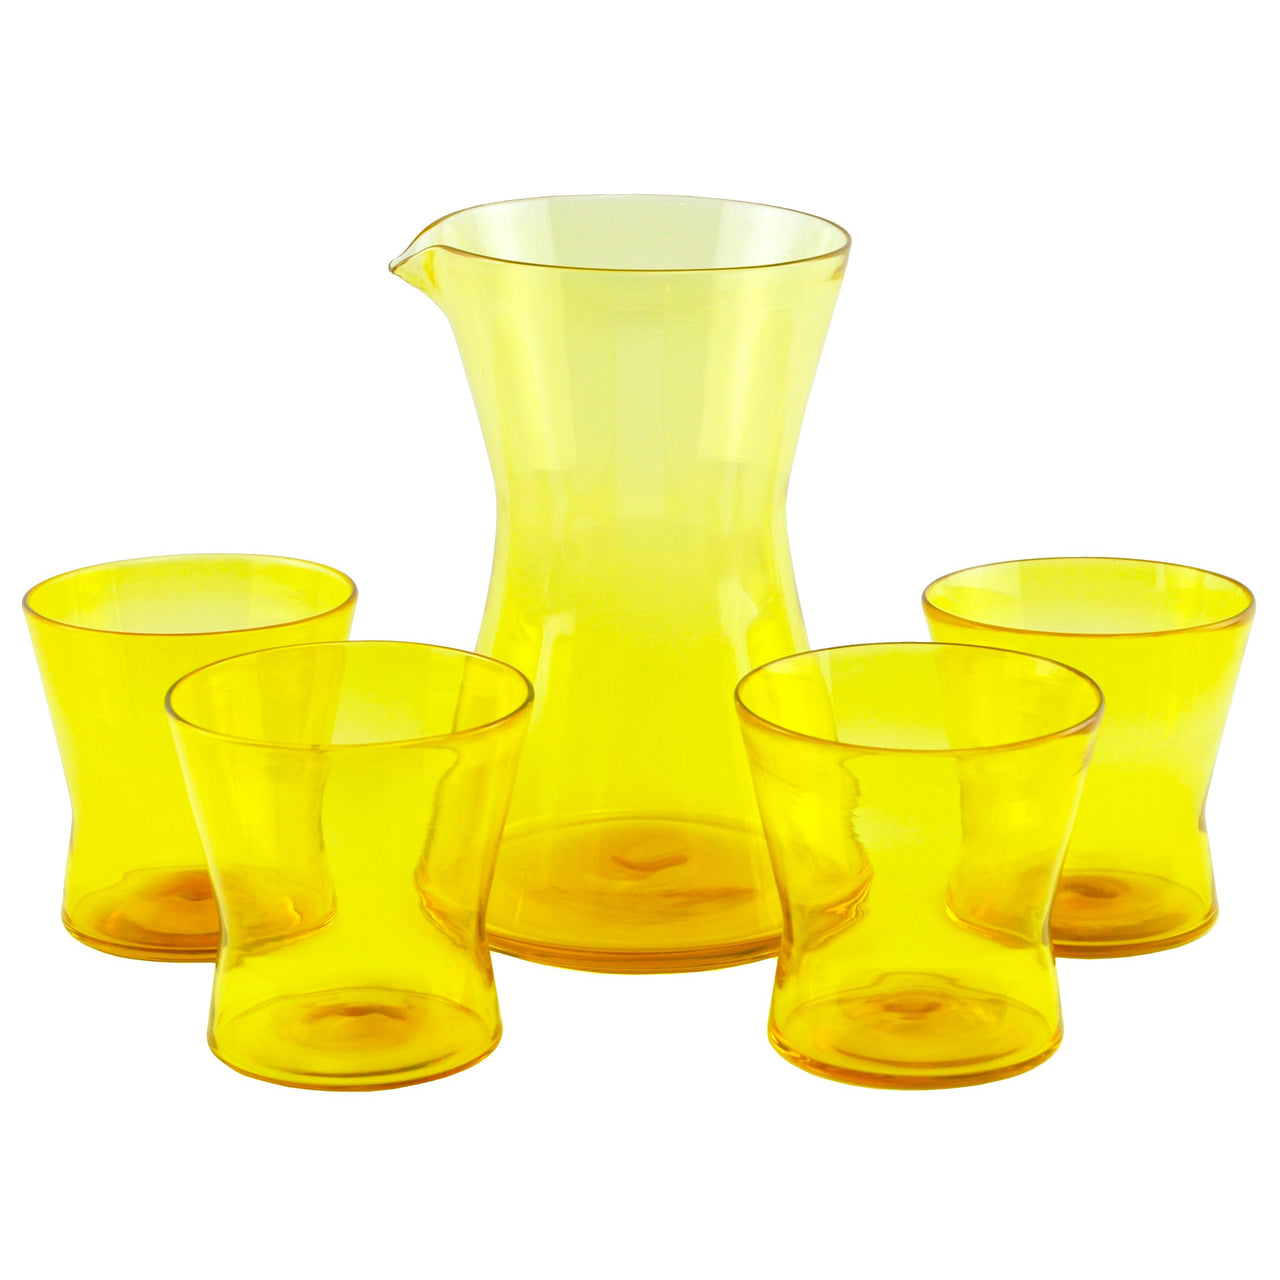 Hand-blown Yellow Cocktail Pitcher Set | The Hour Shop Barware